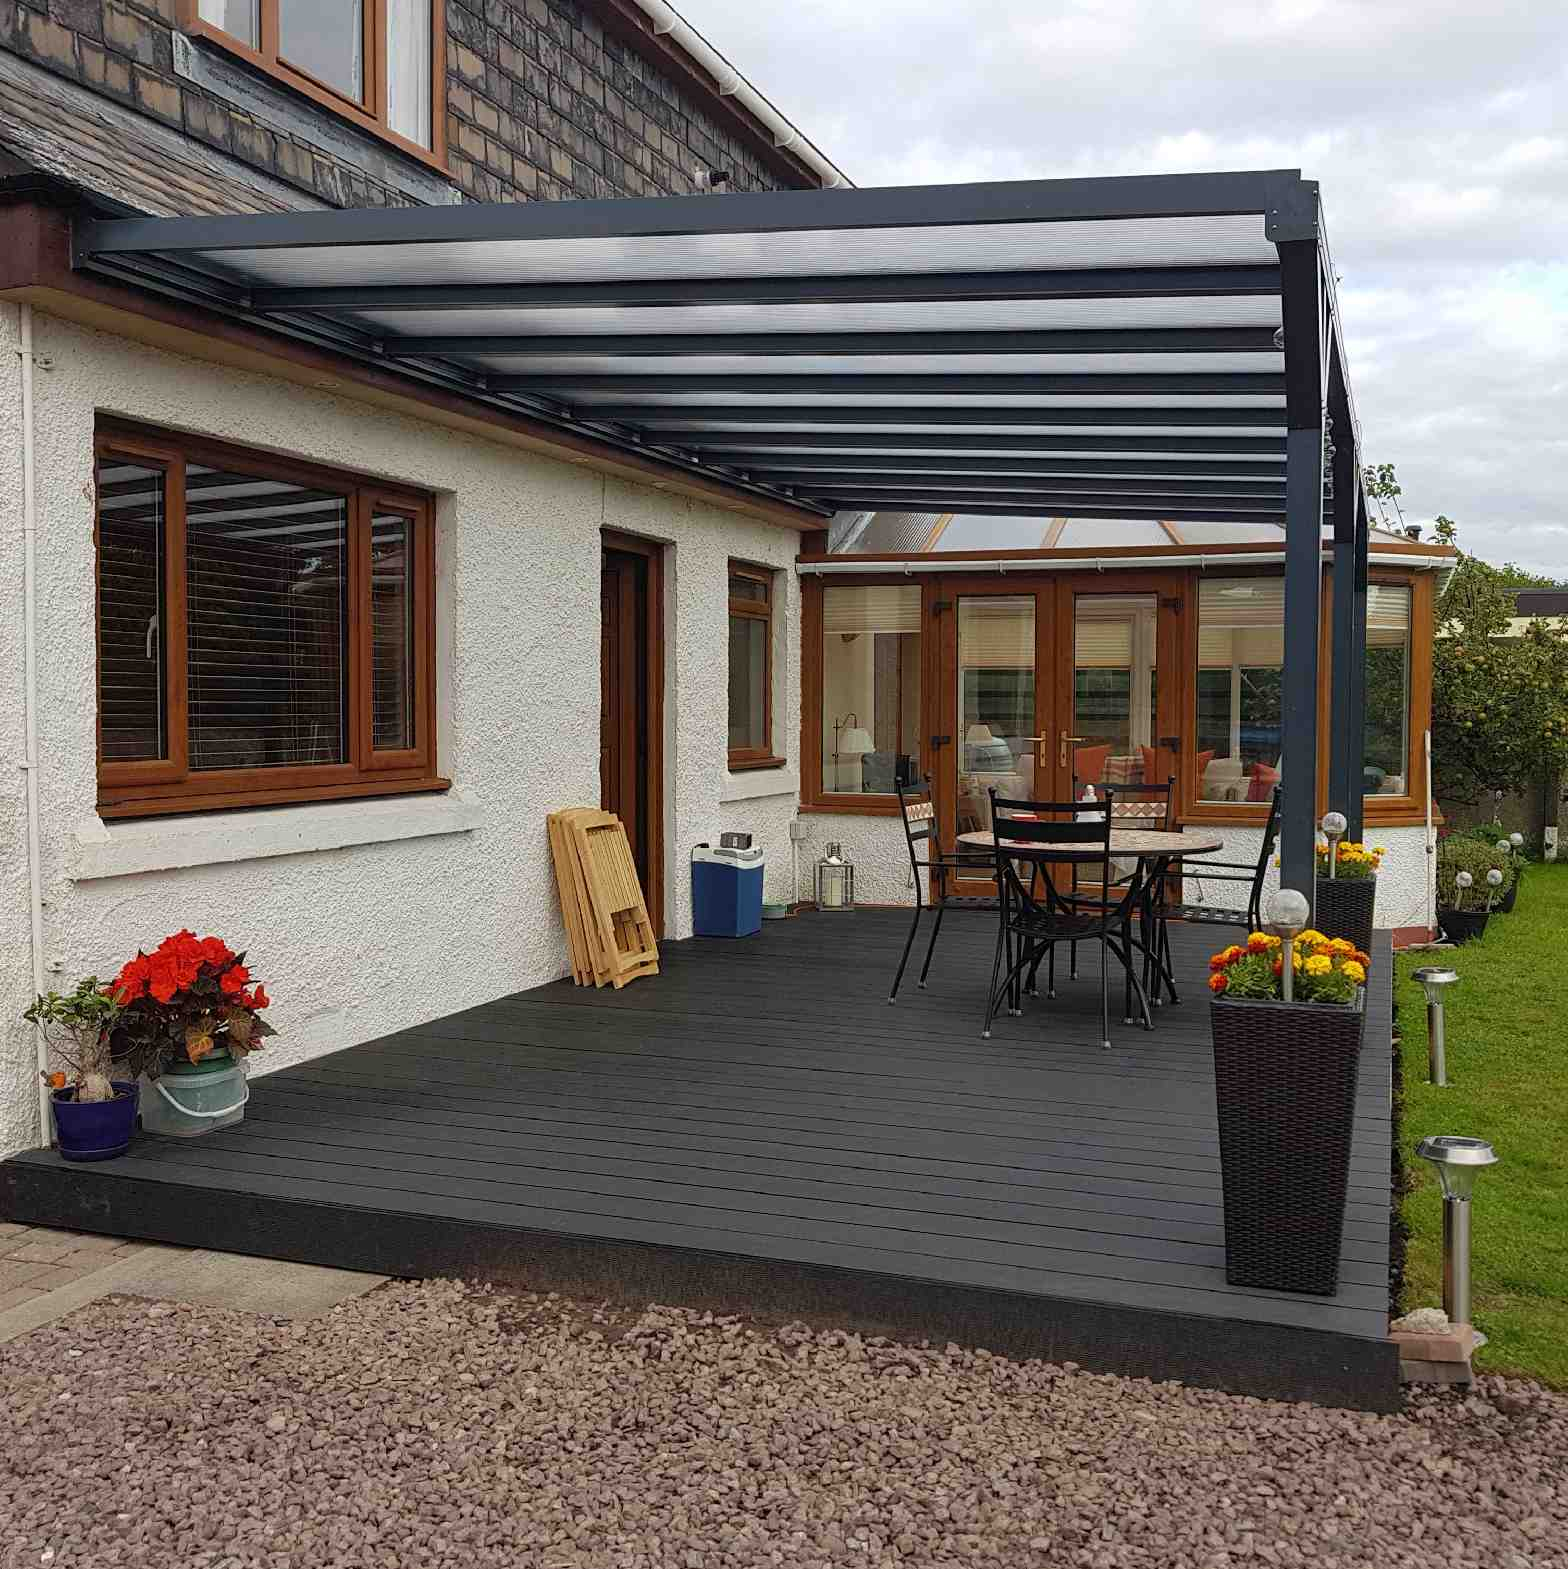 Buy Omega Verandah, Anthracite Grey, 16mm Polycarbonate Glazing - 2.1m (W) x 2.0m (P), (2) Supporting Posts online today